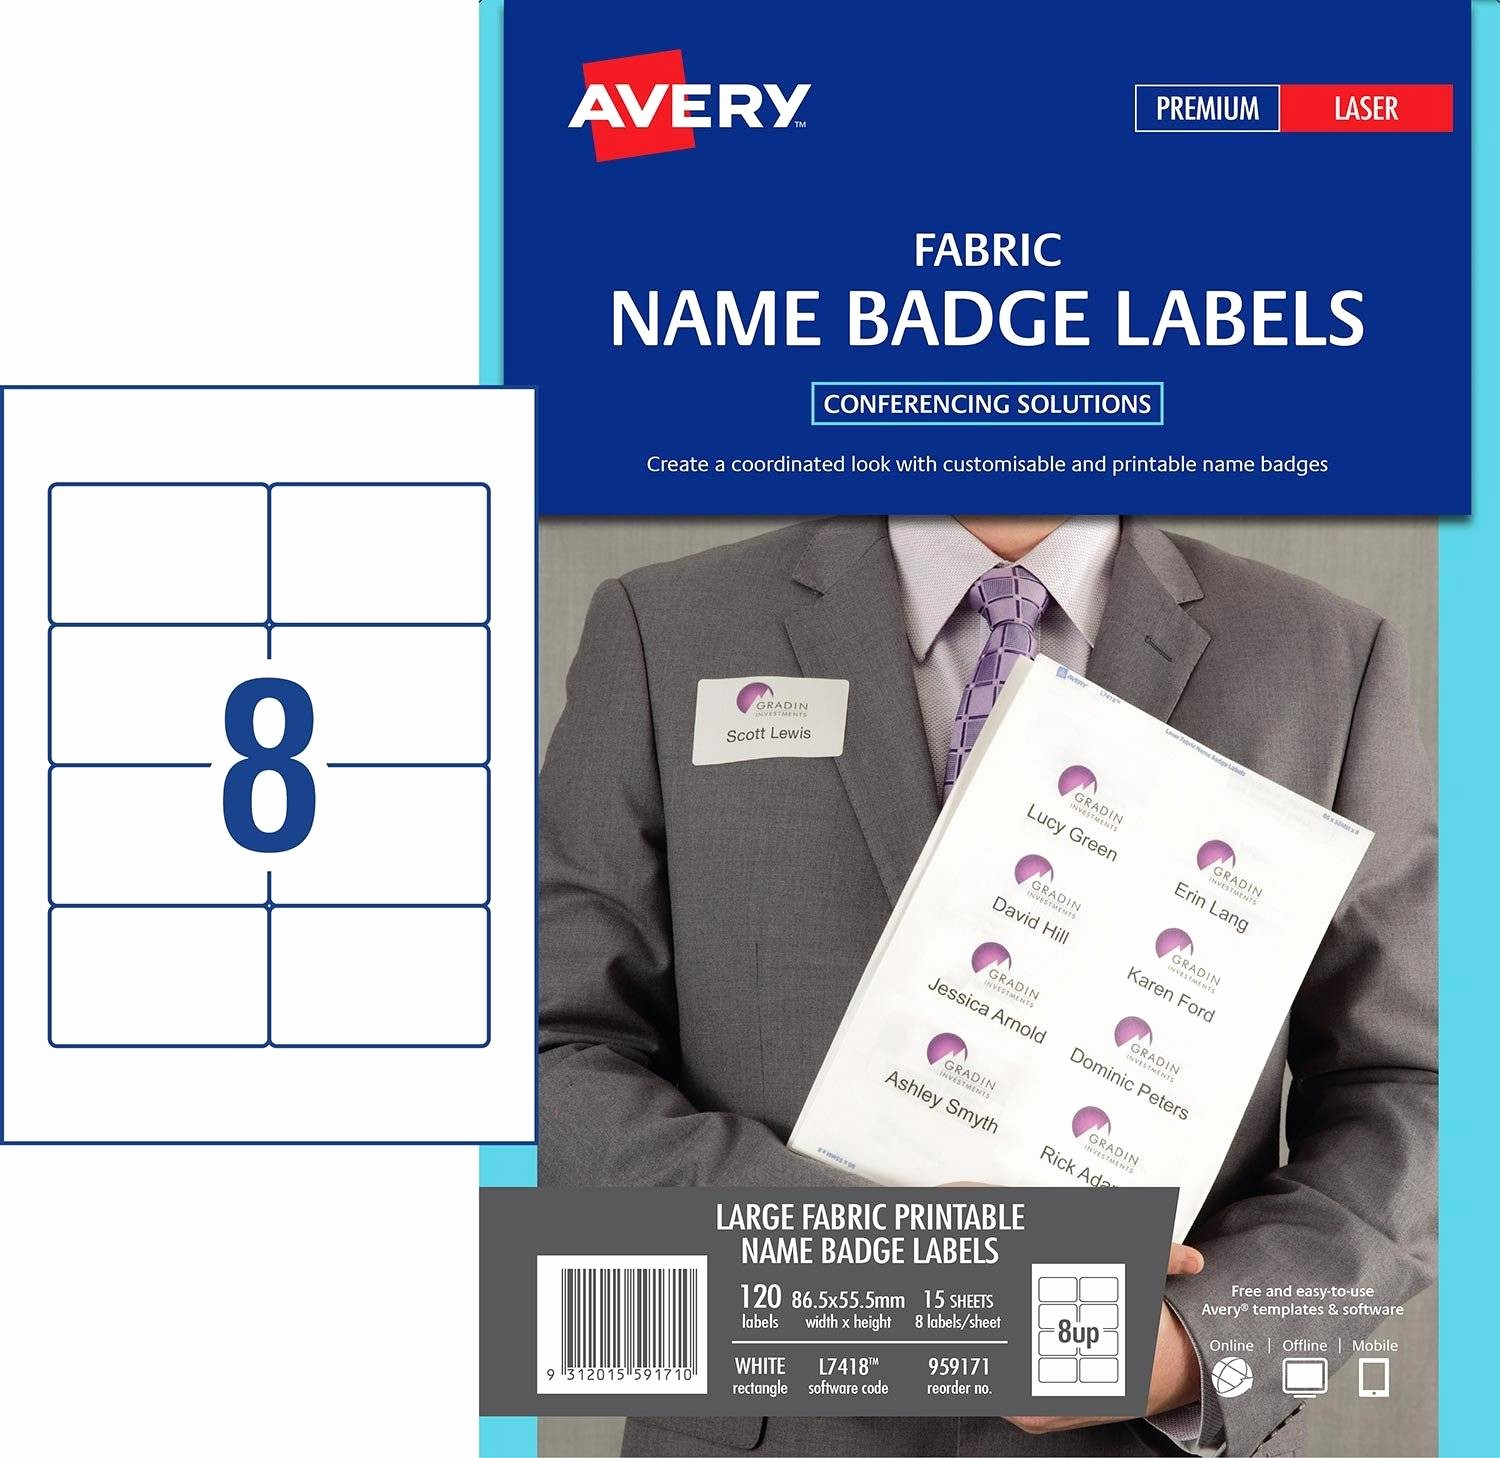 Avery Labels Name Tags Templates Inspirational Fabric Name Badge Labels